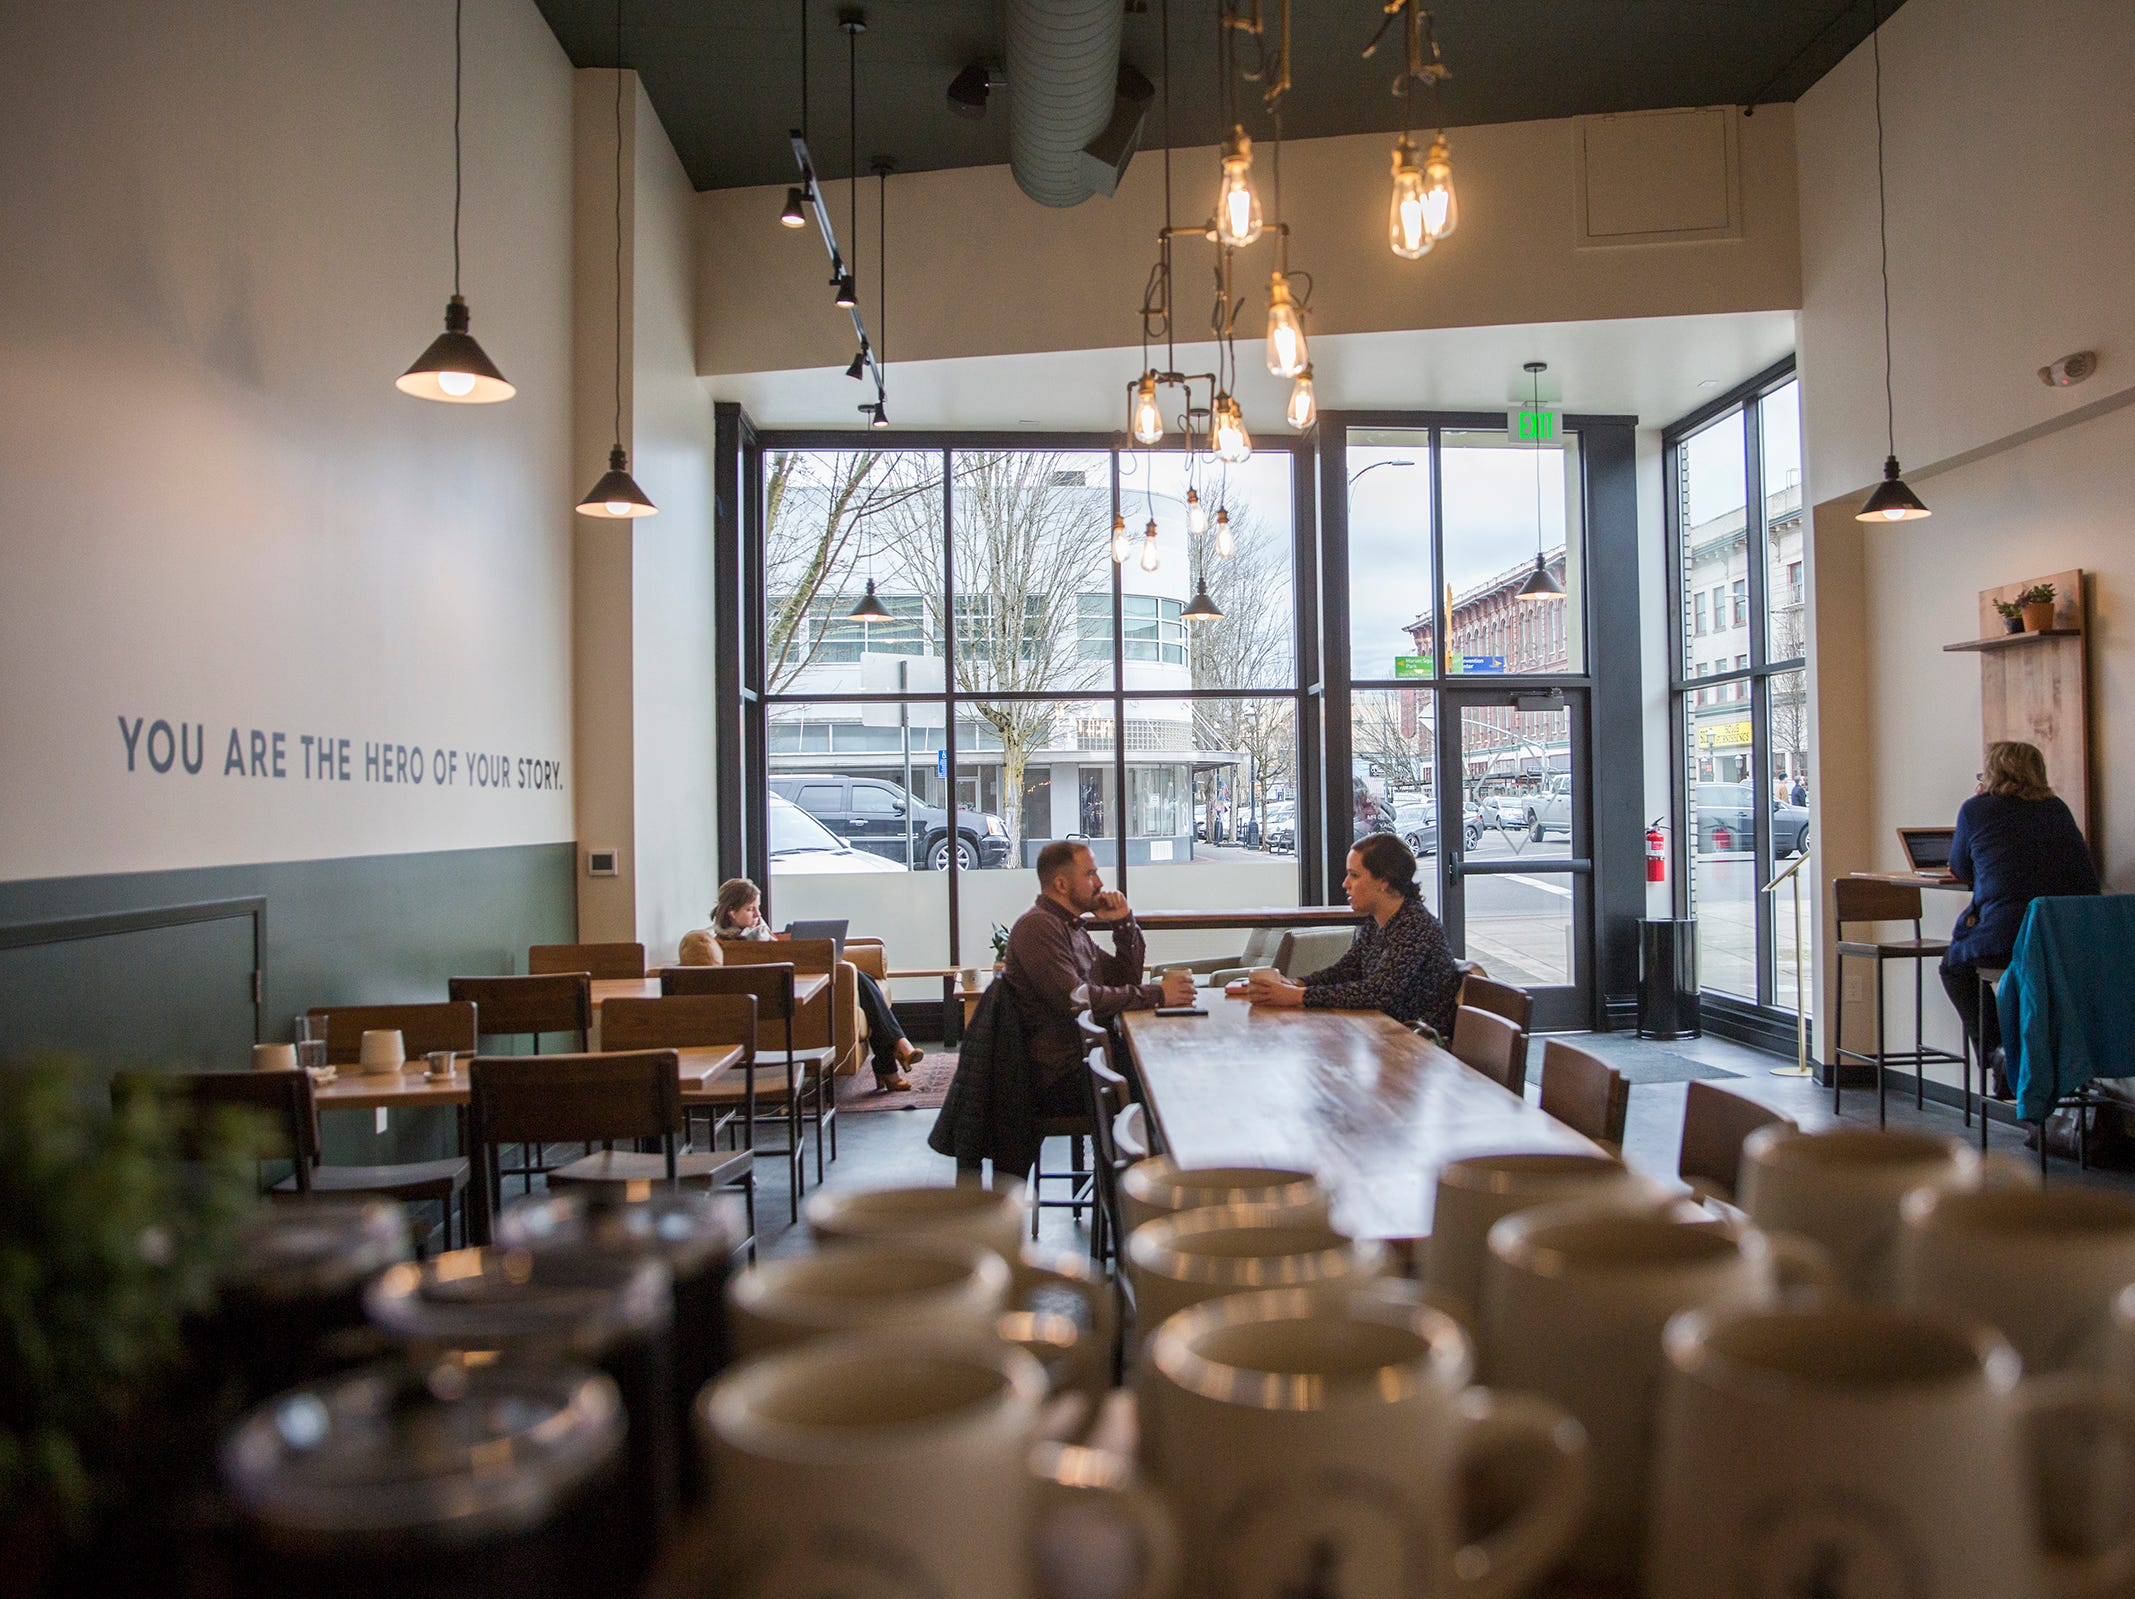 Isaac's Downtown, a new café in downtown Salem on Thursday, Jan. 3, 2019. The coffee shop is from the owners of IKE Box and Isaac's Room.